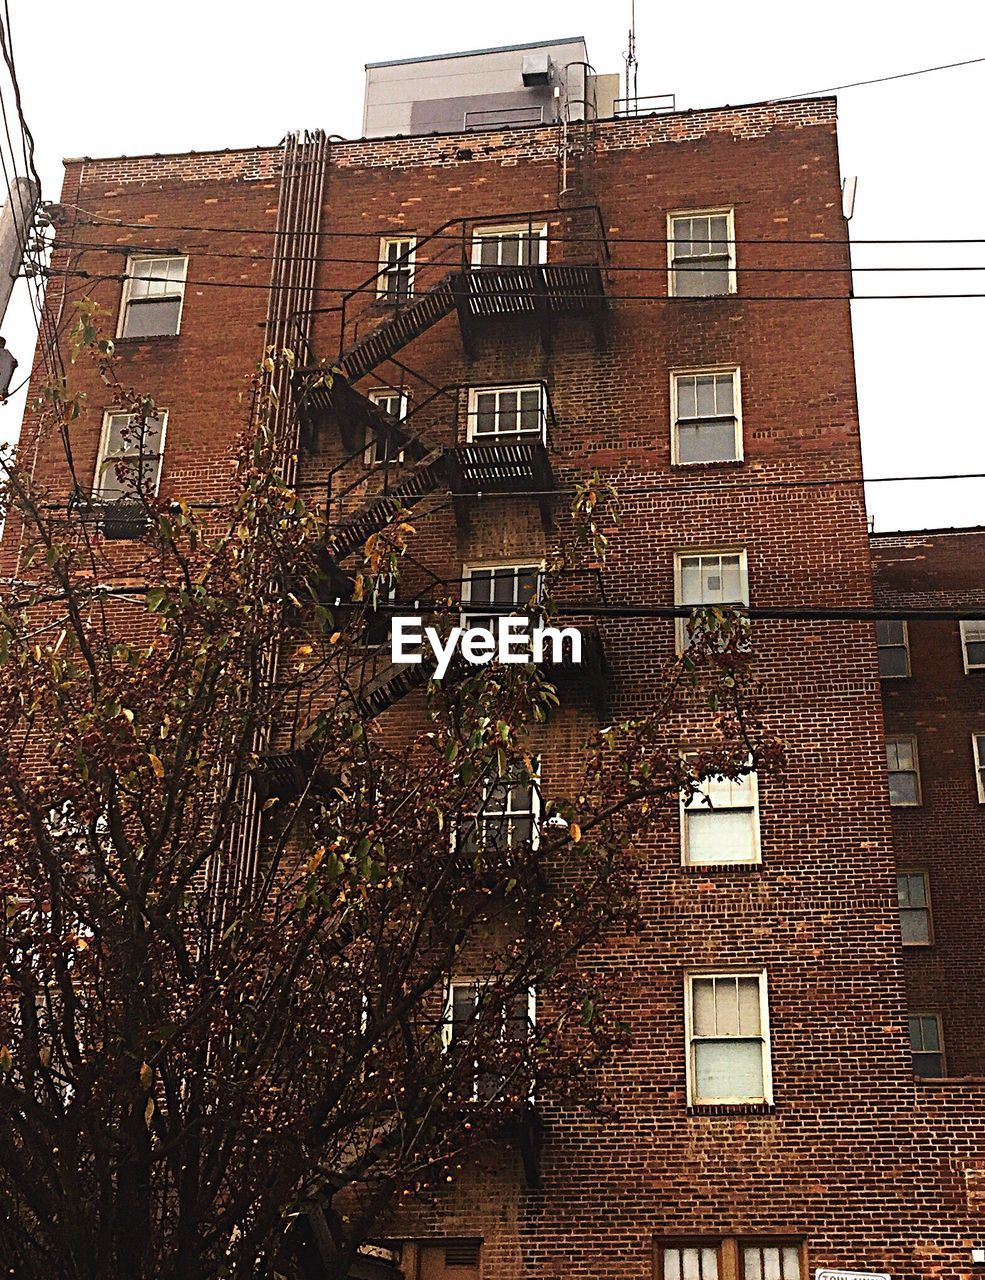 architecture, building exterior, fire escape, built structure, emergencies and disasters, low angle view, window, no people, residential building, outdoors, urgency, day, city, tree, sky